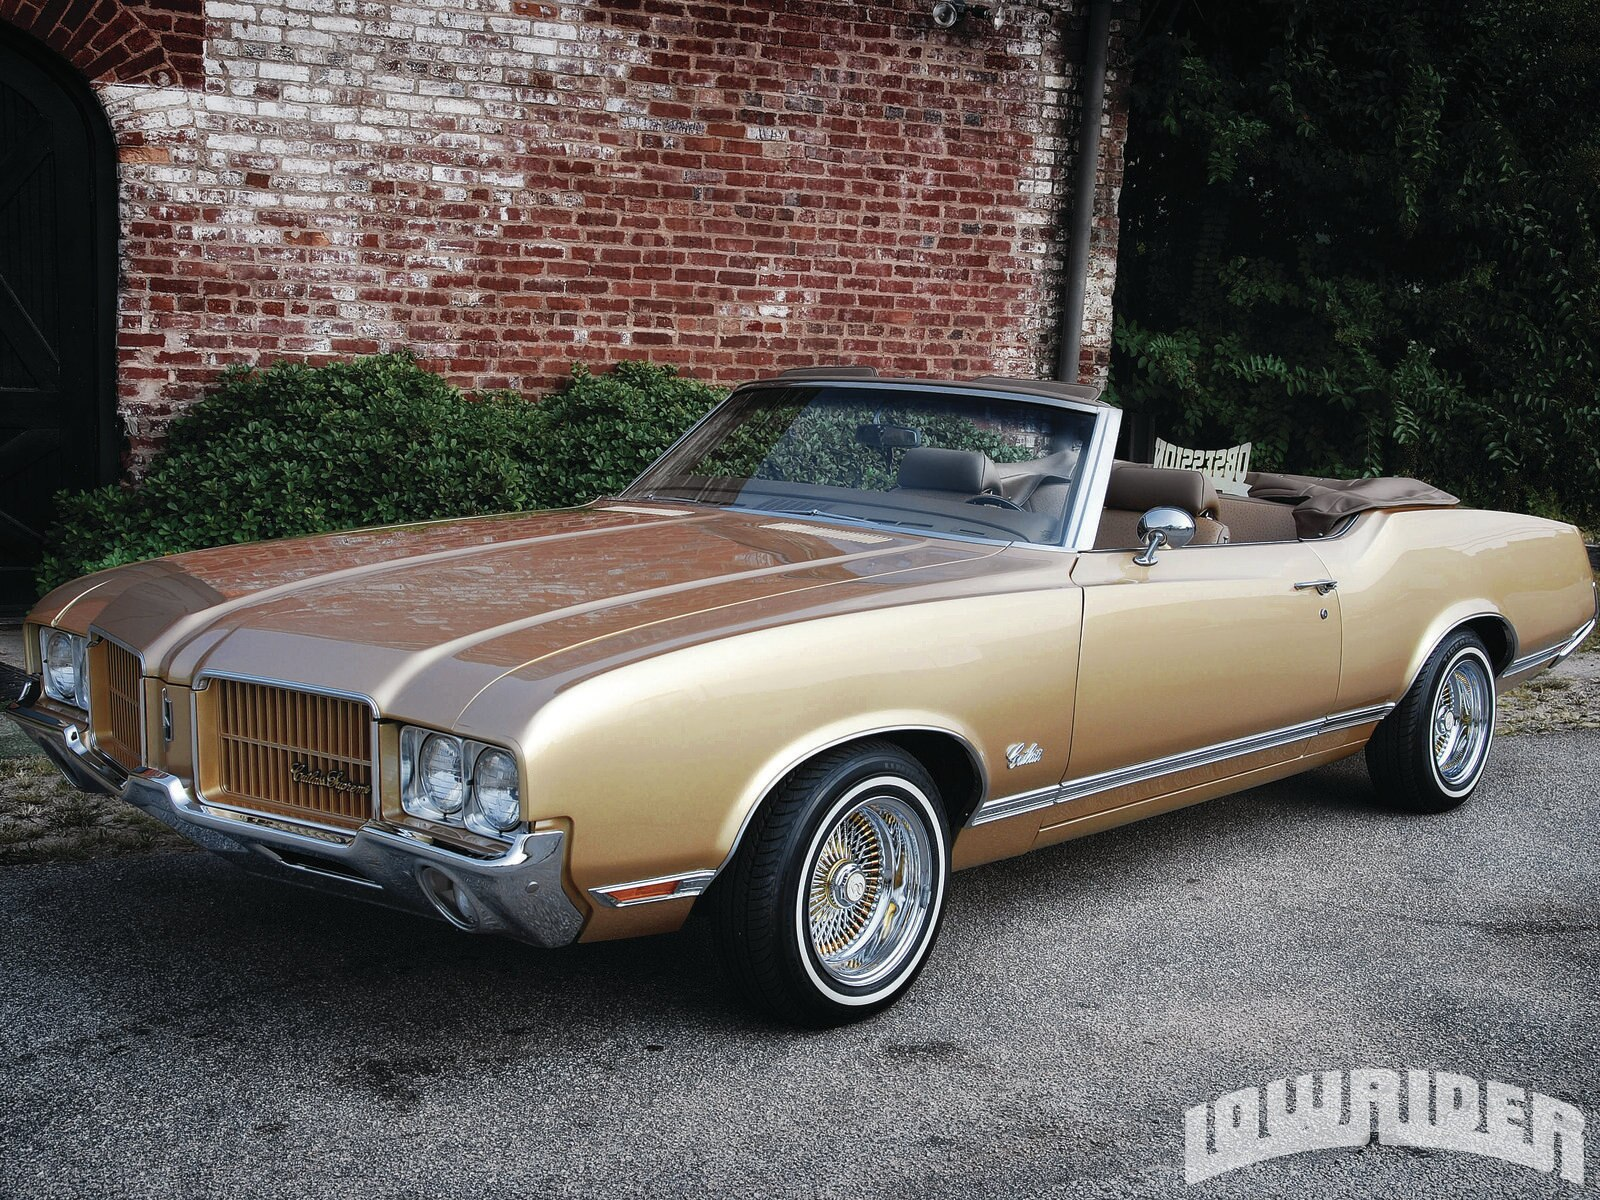 1204-lrmp-02-o-1971-oldsmobile-cutlass-driver-side-front-view1